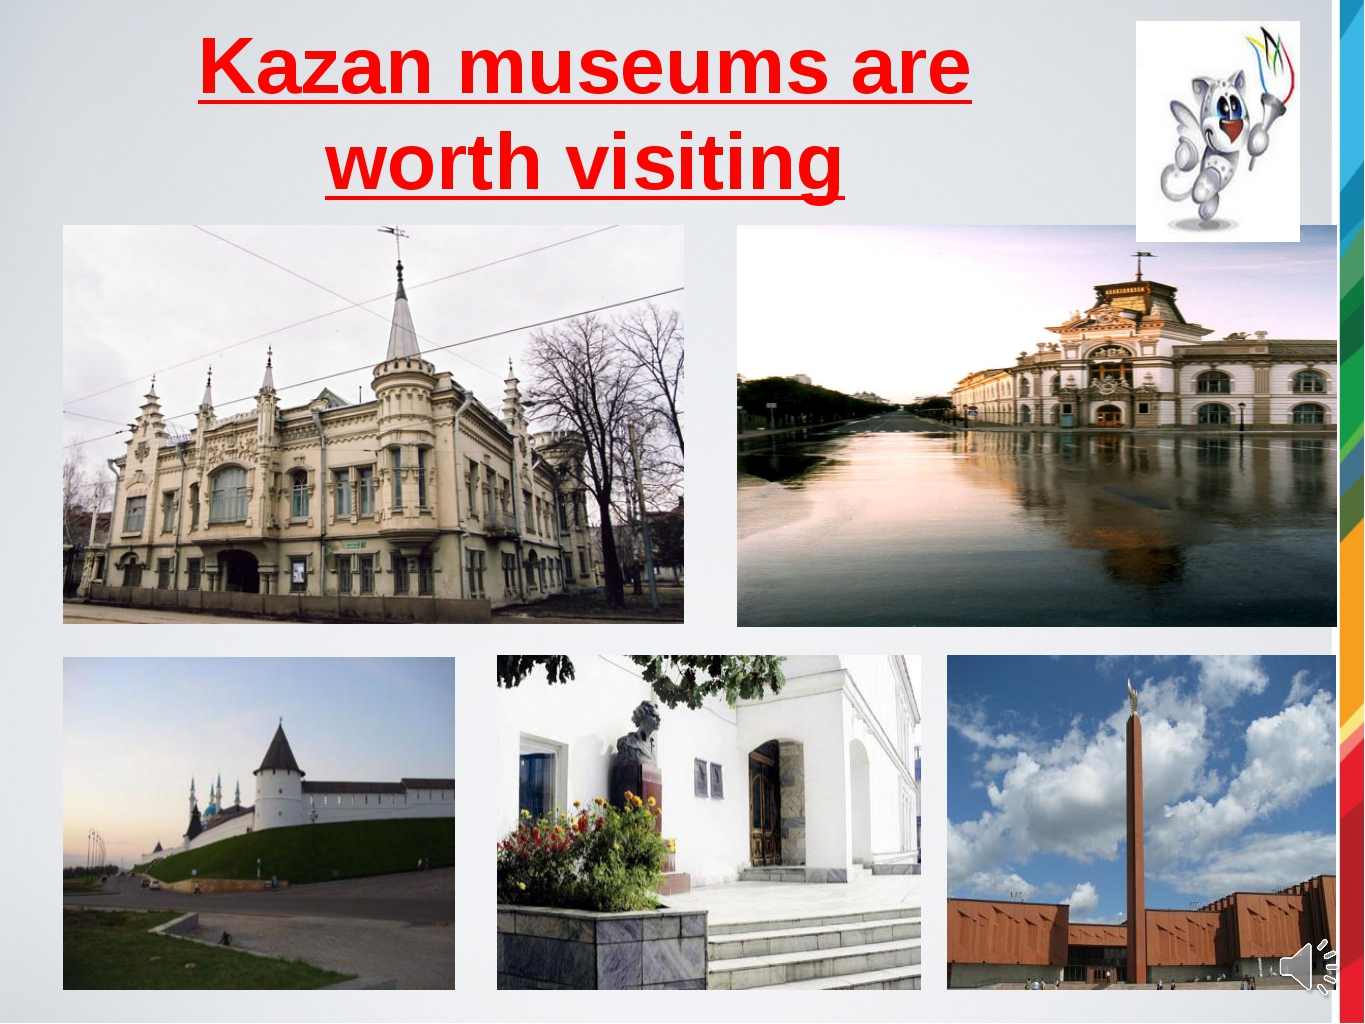 Kazan museums are worth visiting